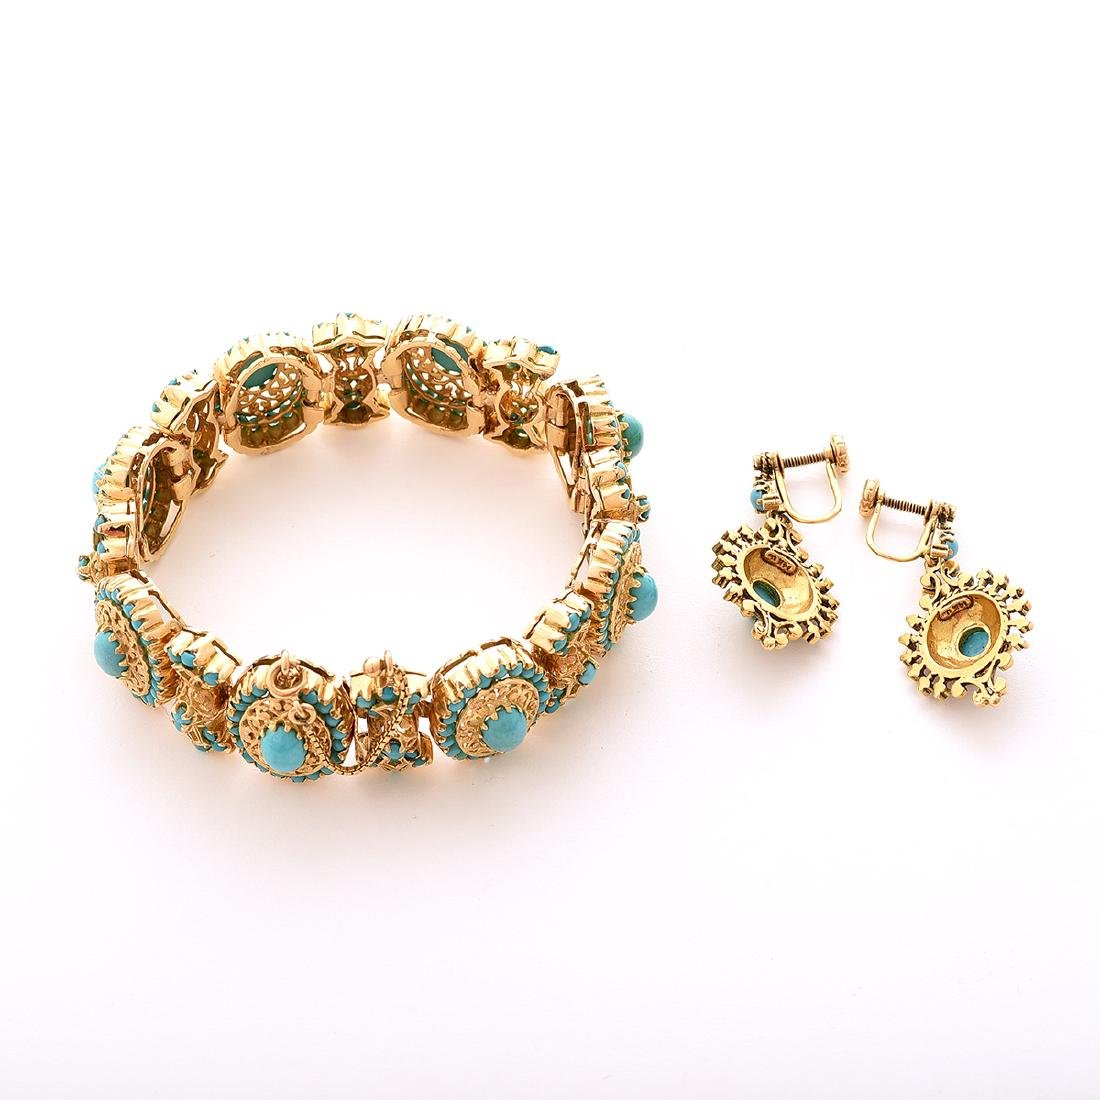 Reproduction Turquoise, Yellow Gold Jewelry Suite. - 5